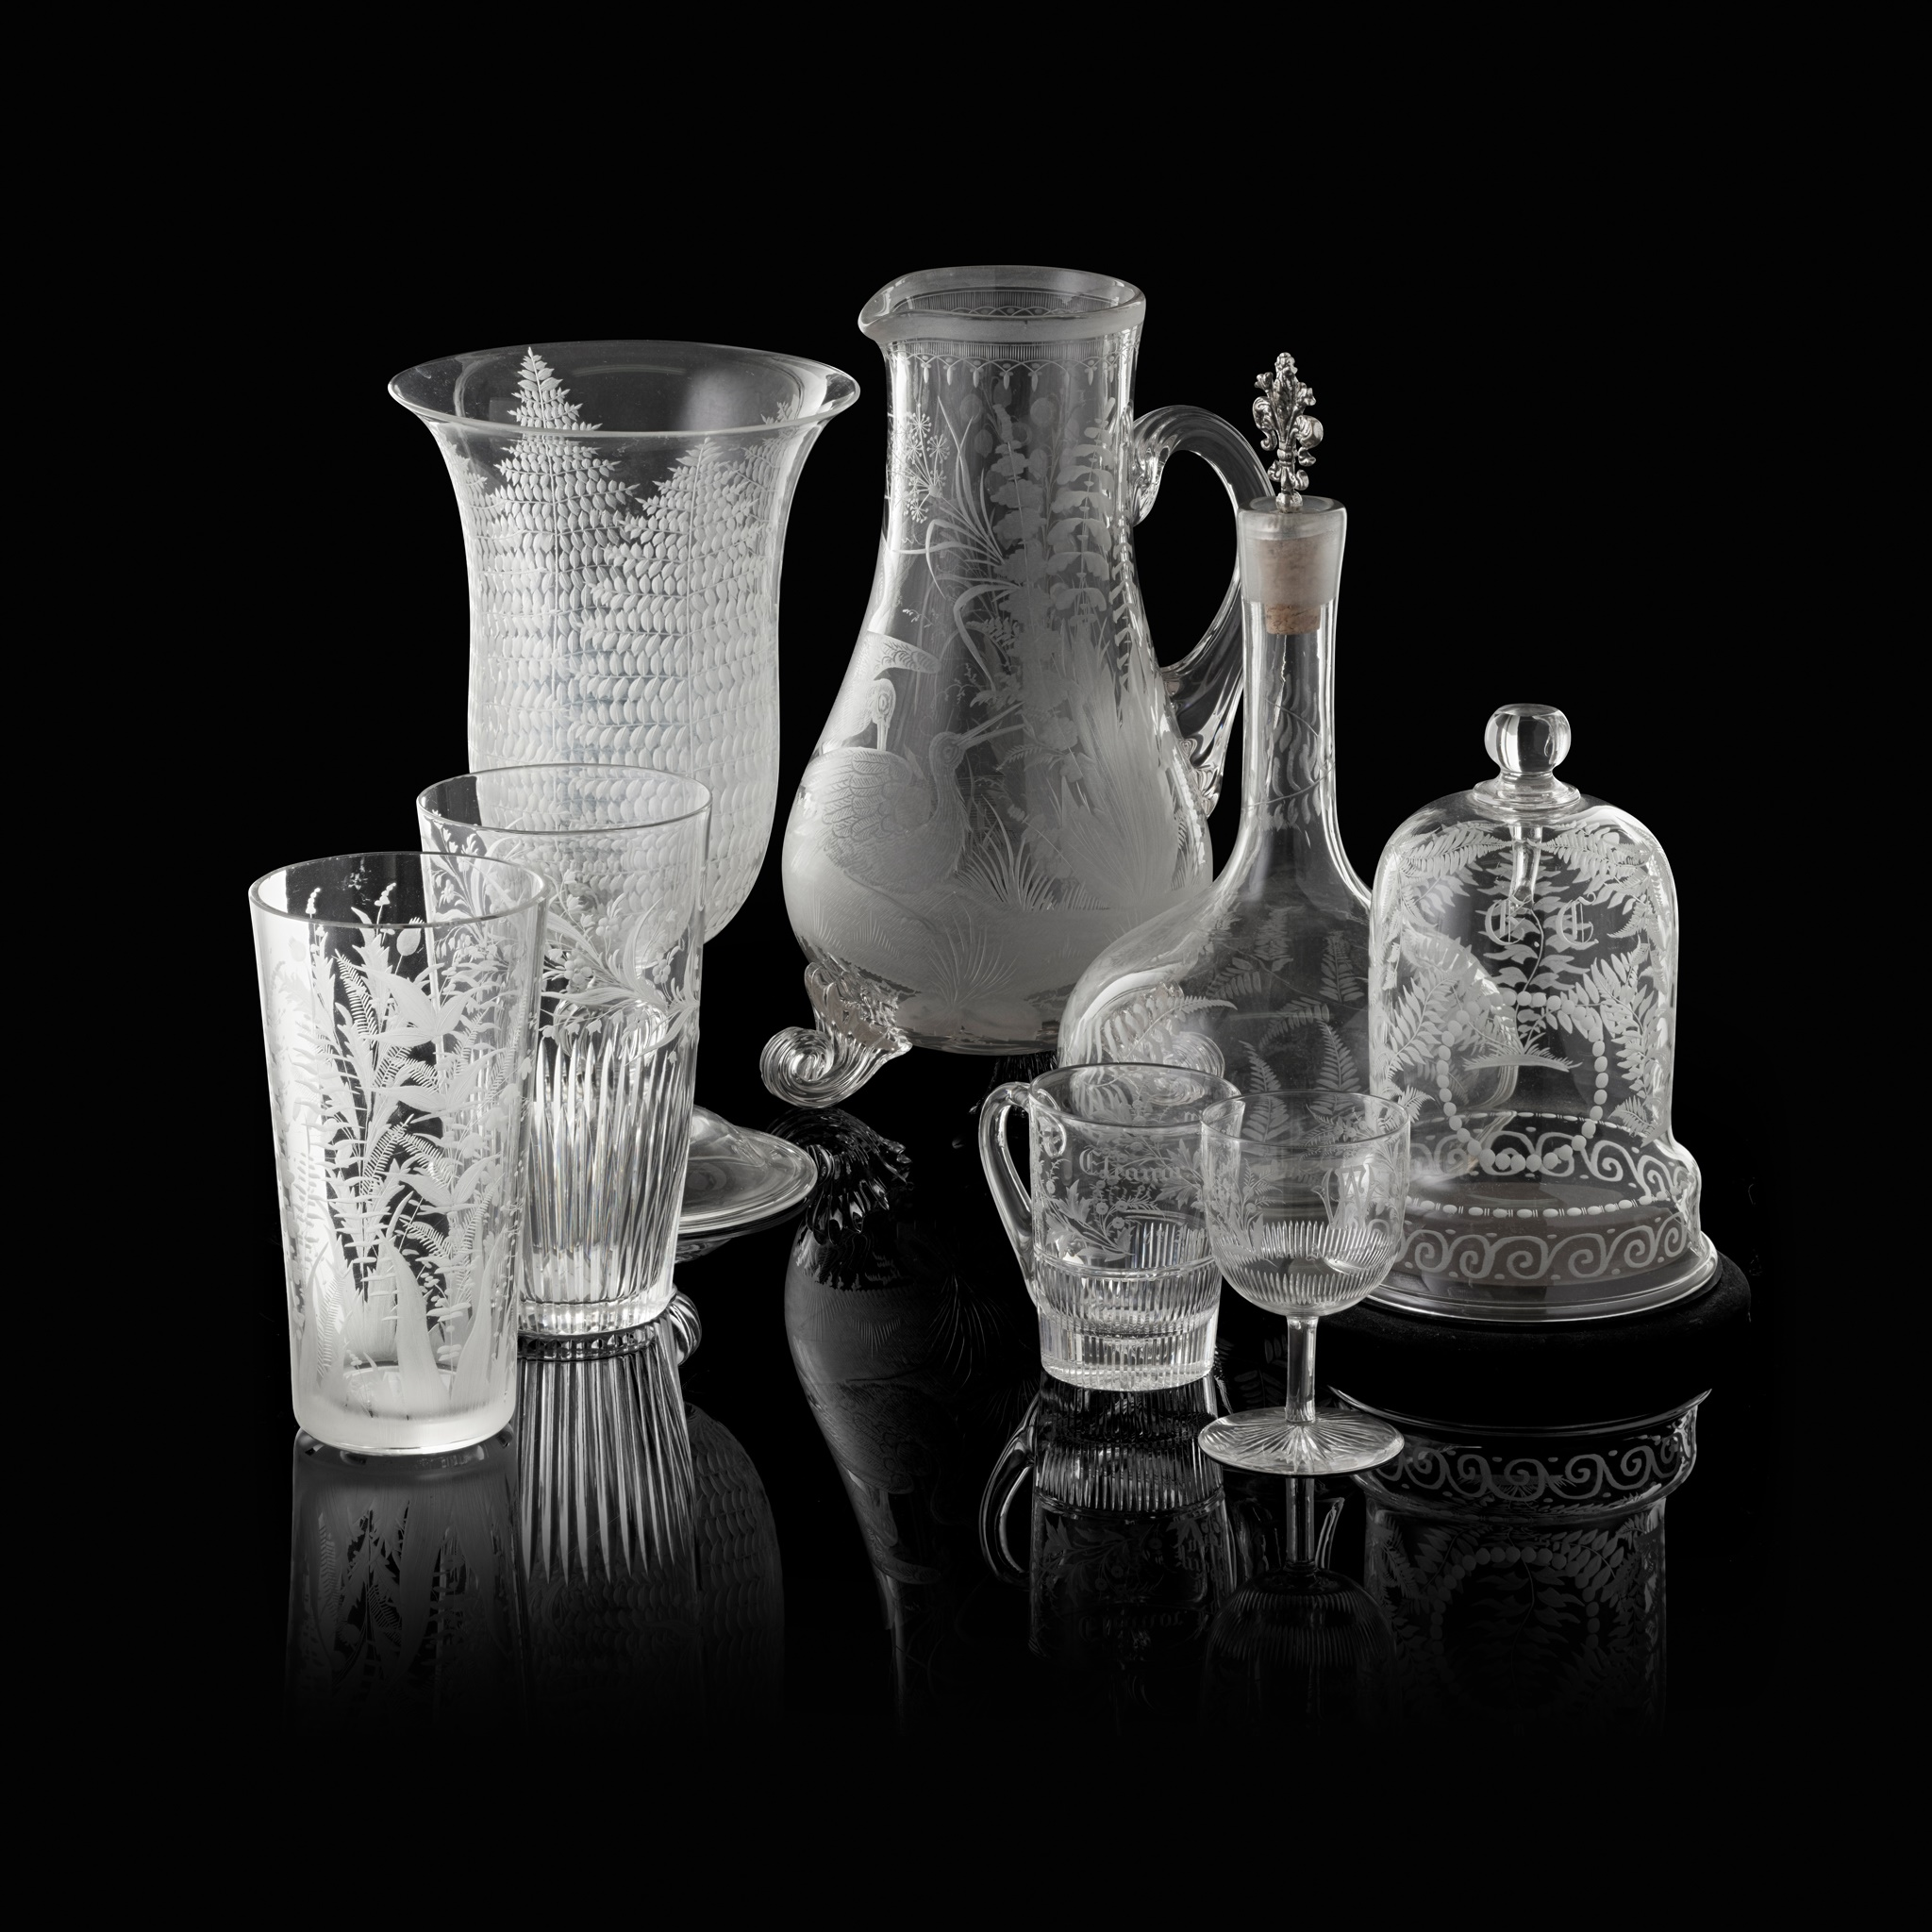 COLLECTION OF VICTORIAN ENGRAVED GLASSWARE 19TH CENTURY